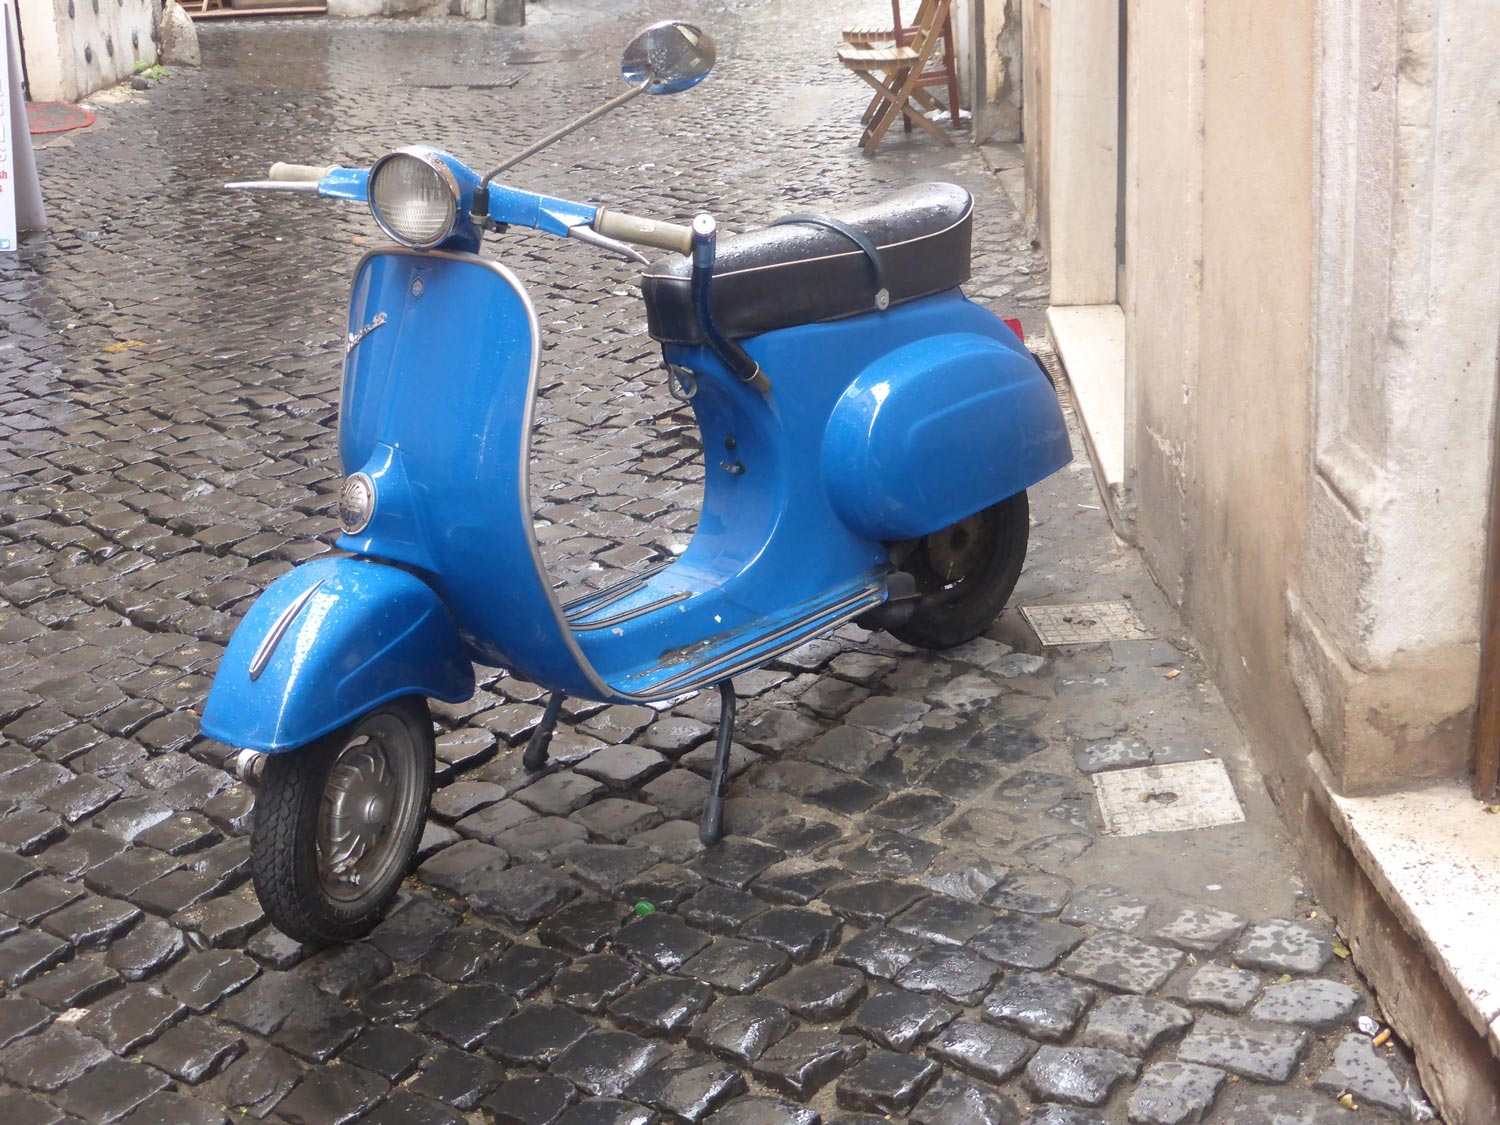 Blue Vespa in the cobblestone streets of Rome